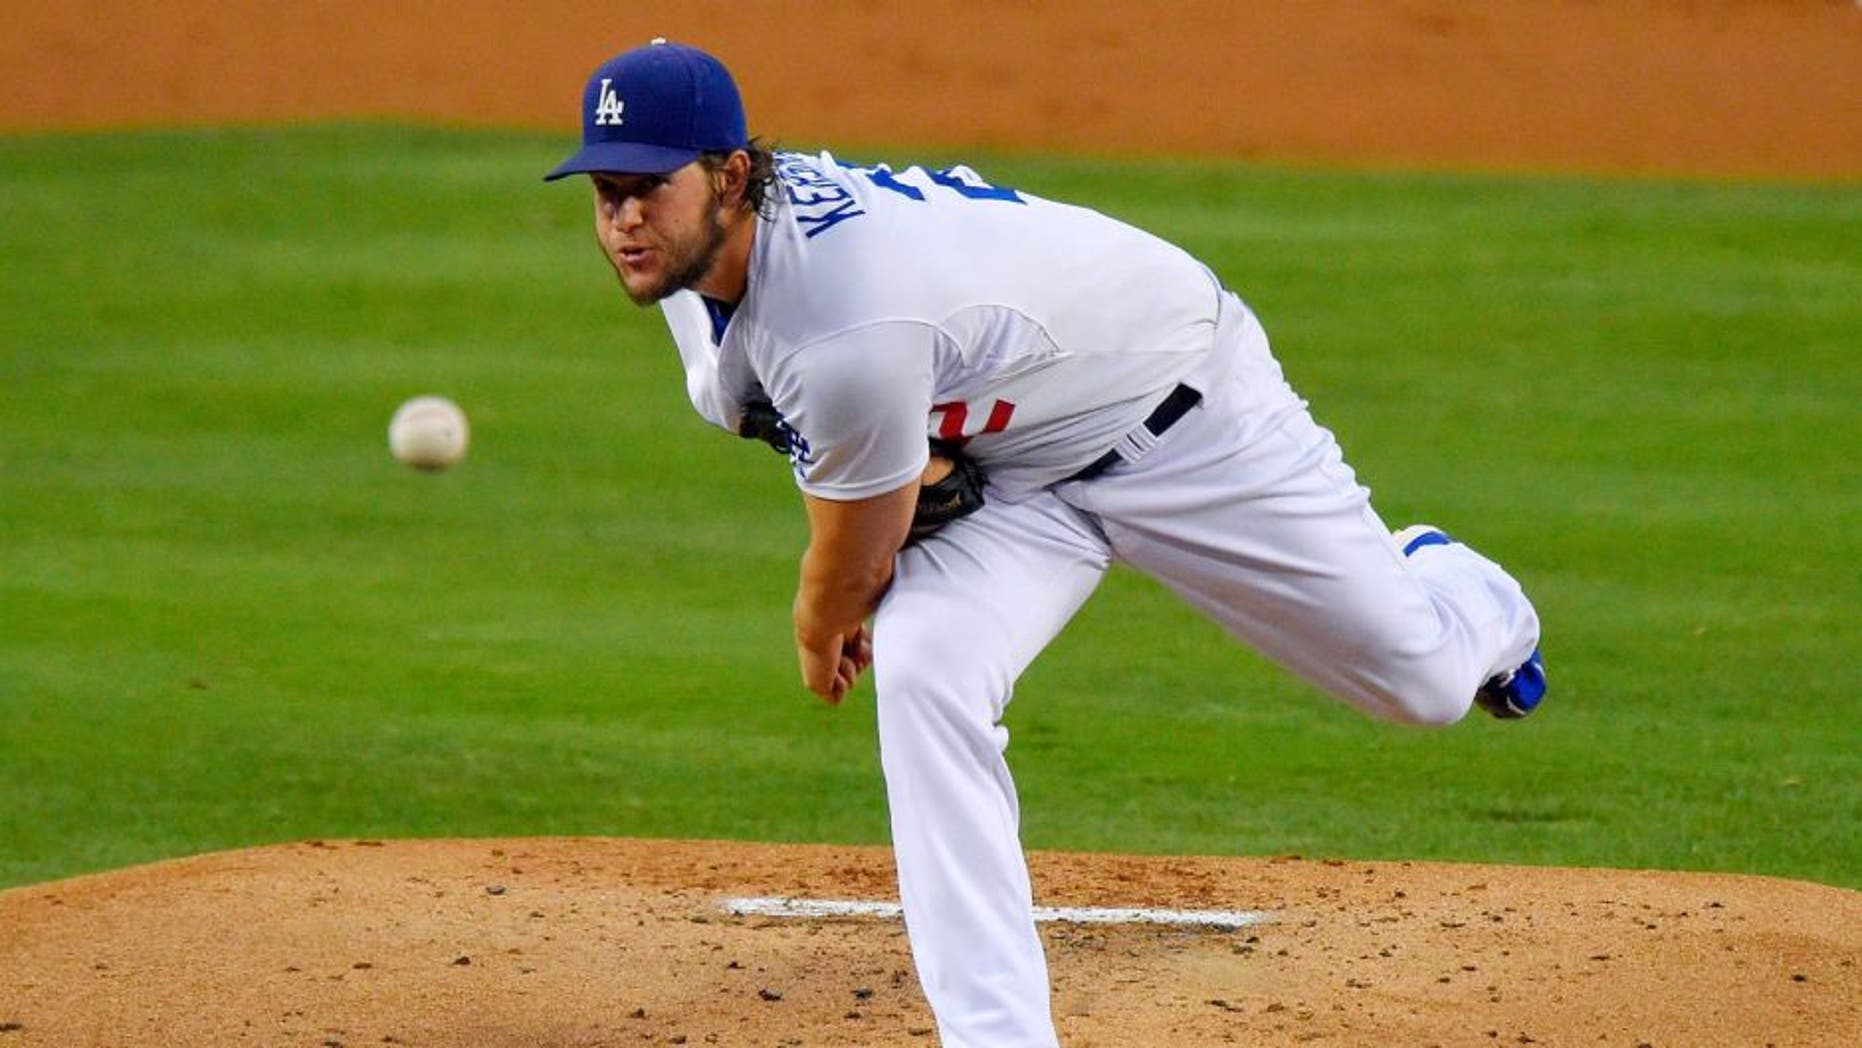 Los Angeles Dodgers starting pitcher Clayton Kershaw throws during the second inning of a baseball game against the Chicago Cubs, Friday, Aug. 28, 2015, in Los Angeles. (AP Photo/Mark J. Terrill)